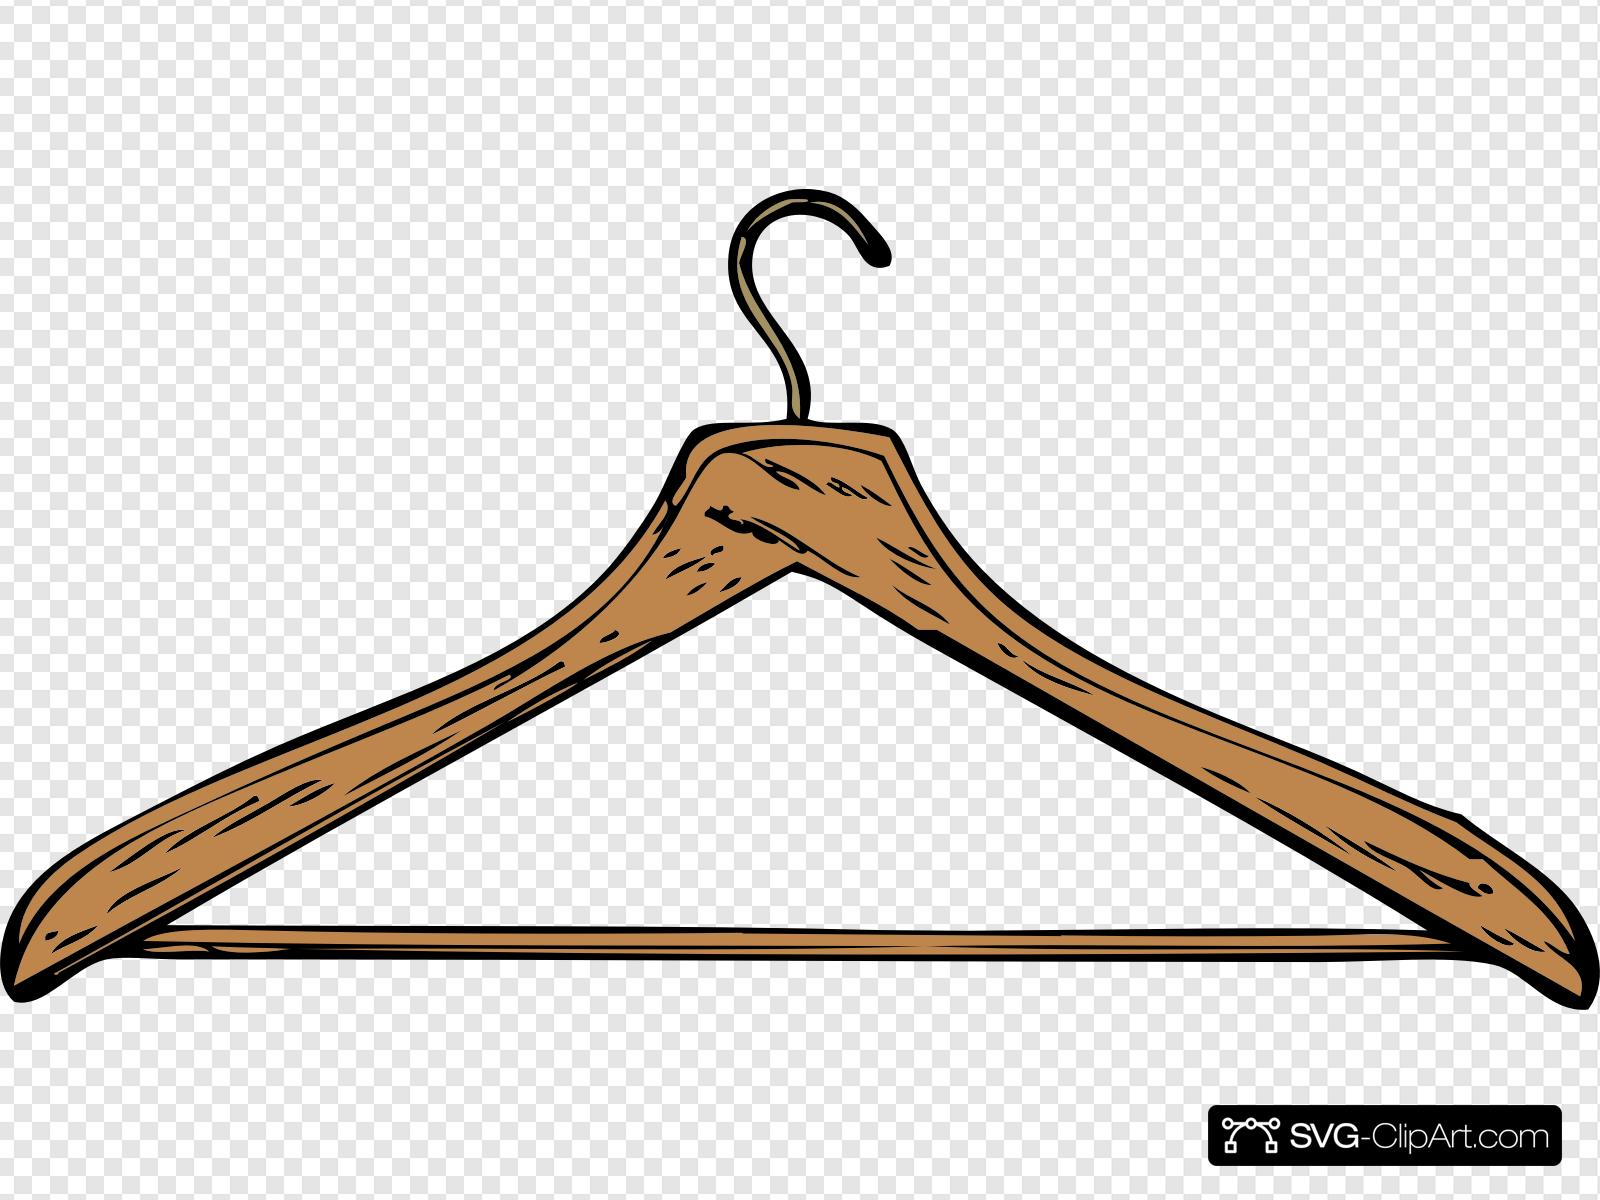 Wooden Hanger Clip art, Icon and SVG.